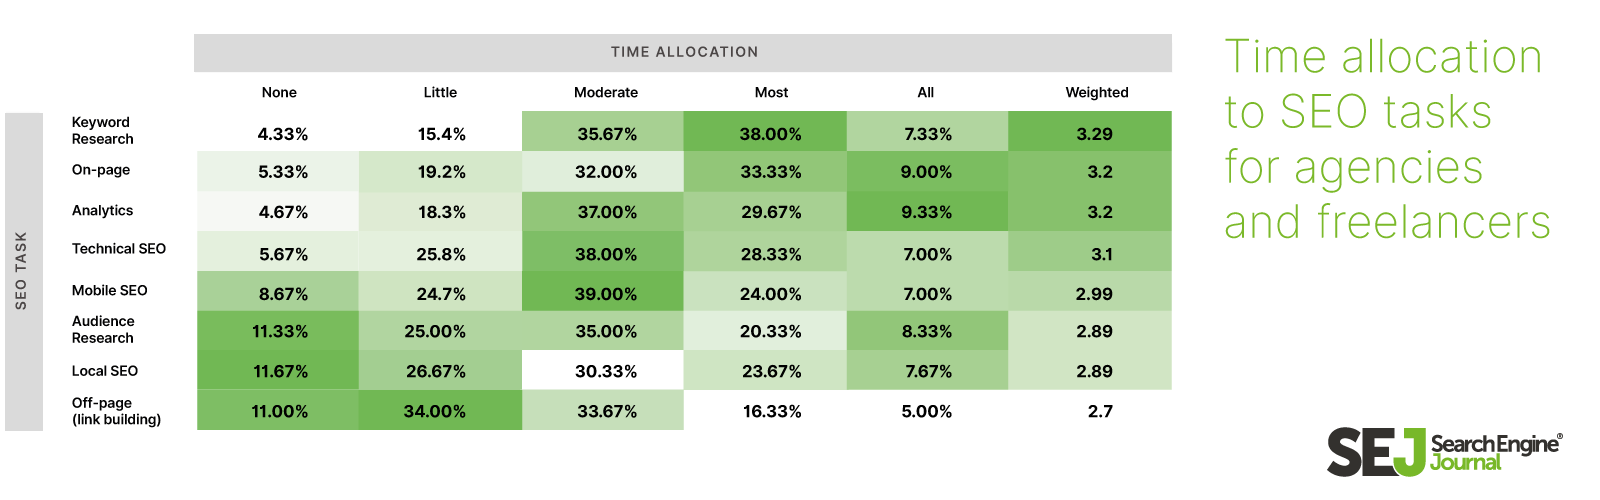 traffic allocation to SEO tasks for agencies